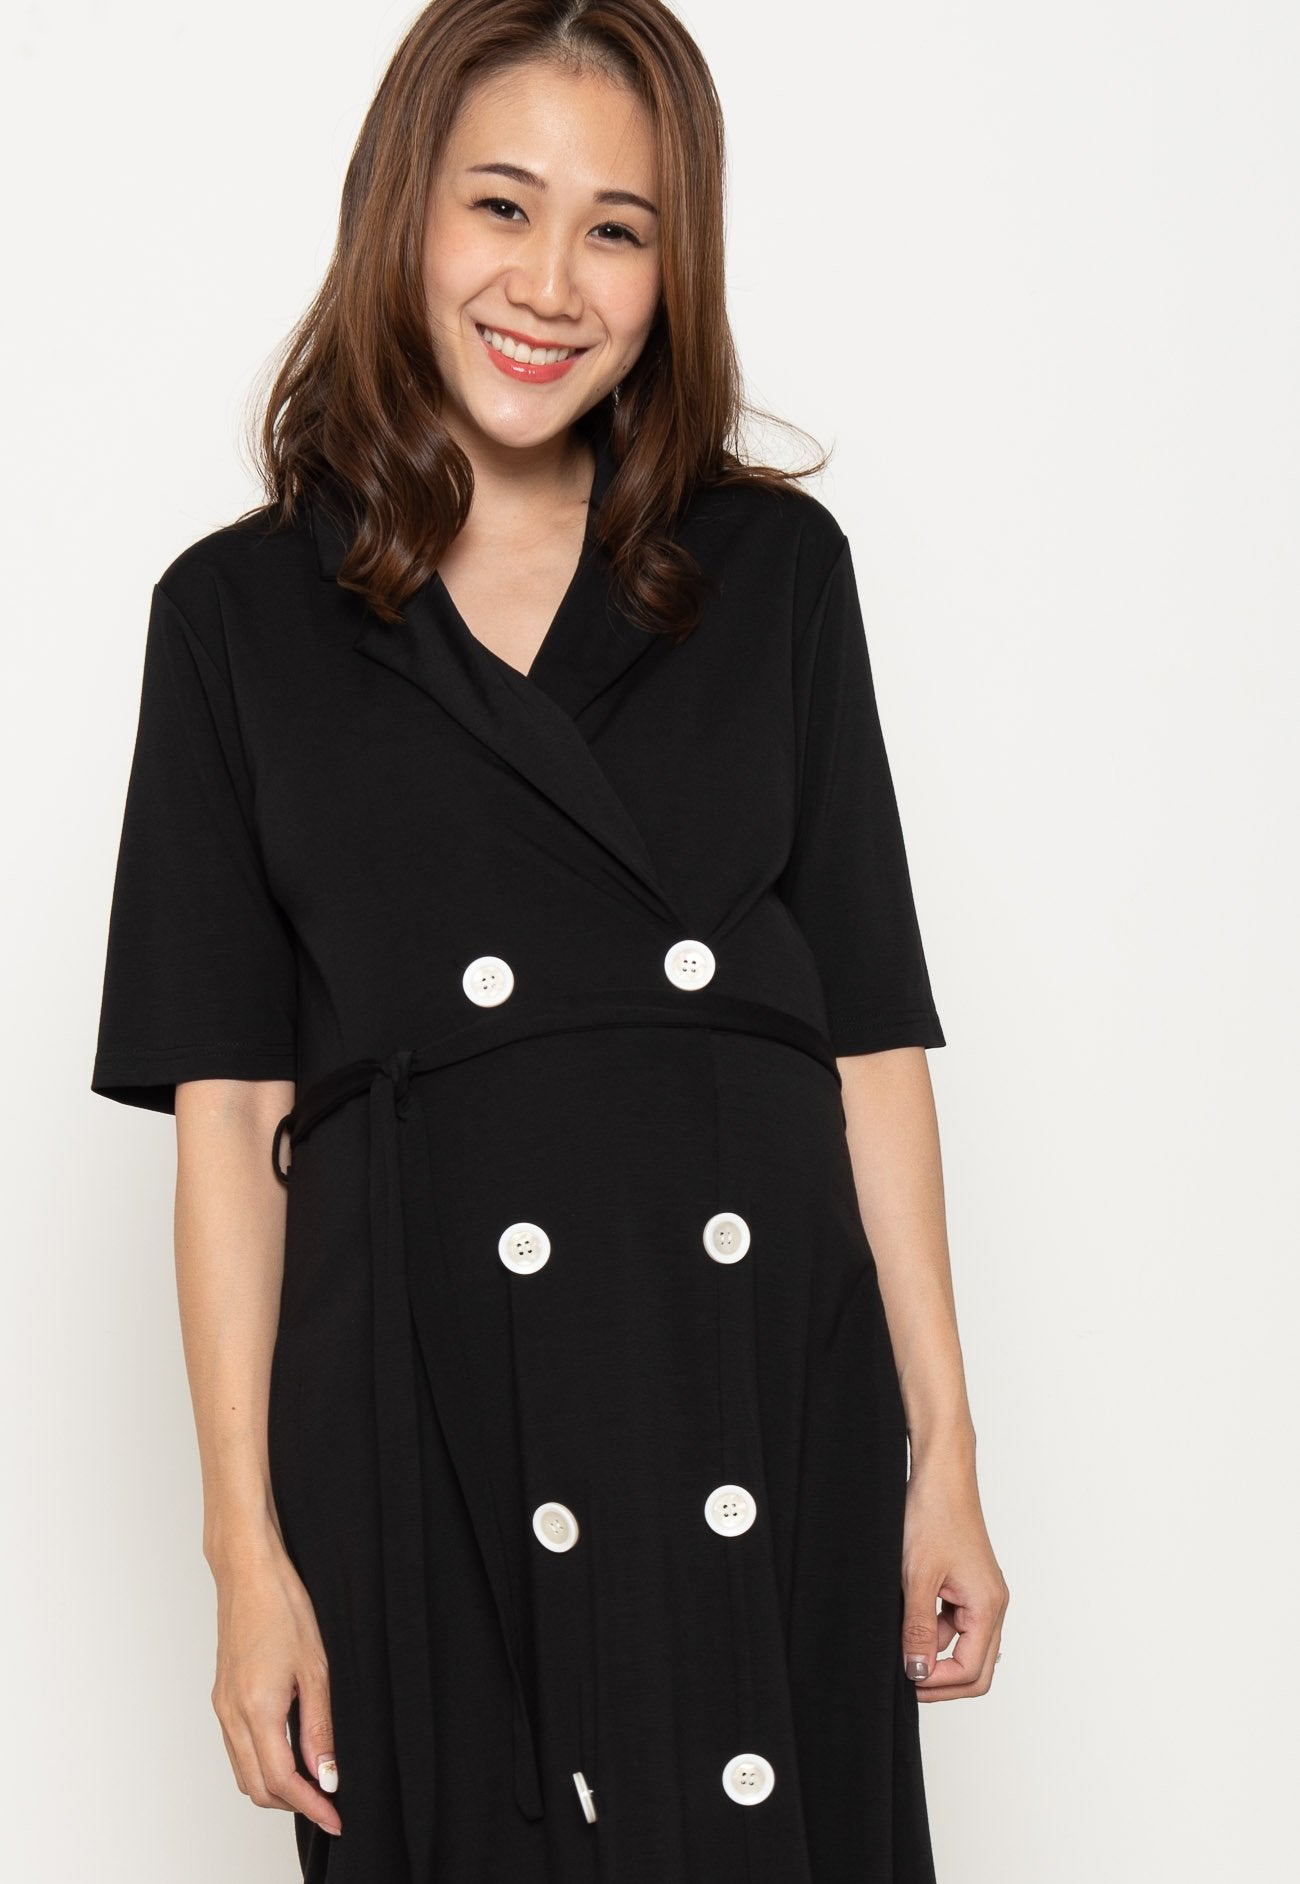 Annora Double Buttons Nursing Dress in Black  by Jump Eat Cry - Maternity and nursing wear